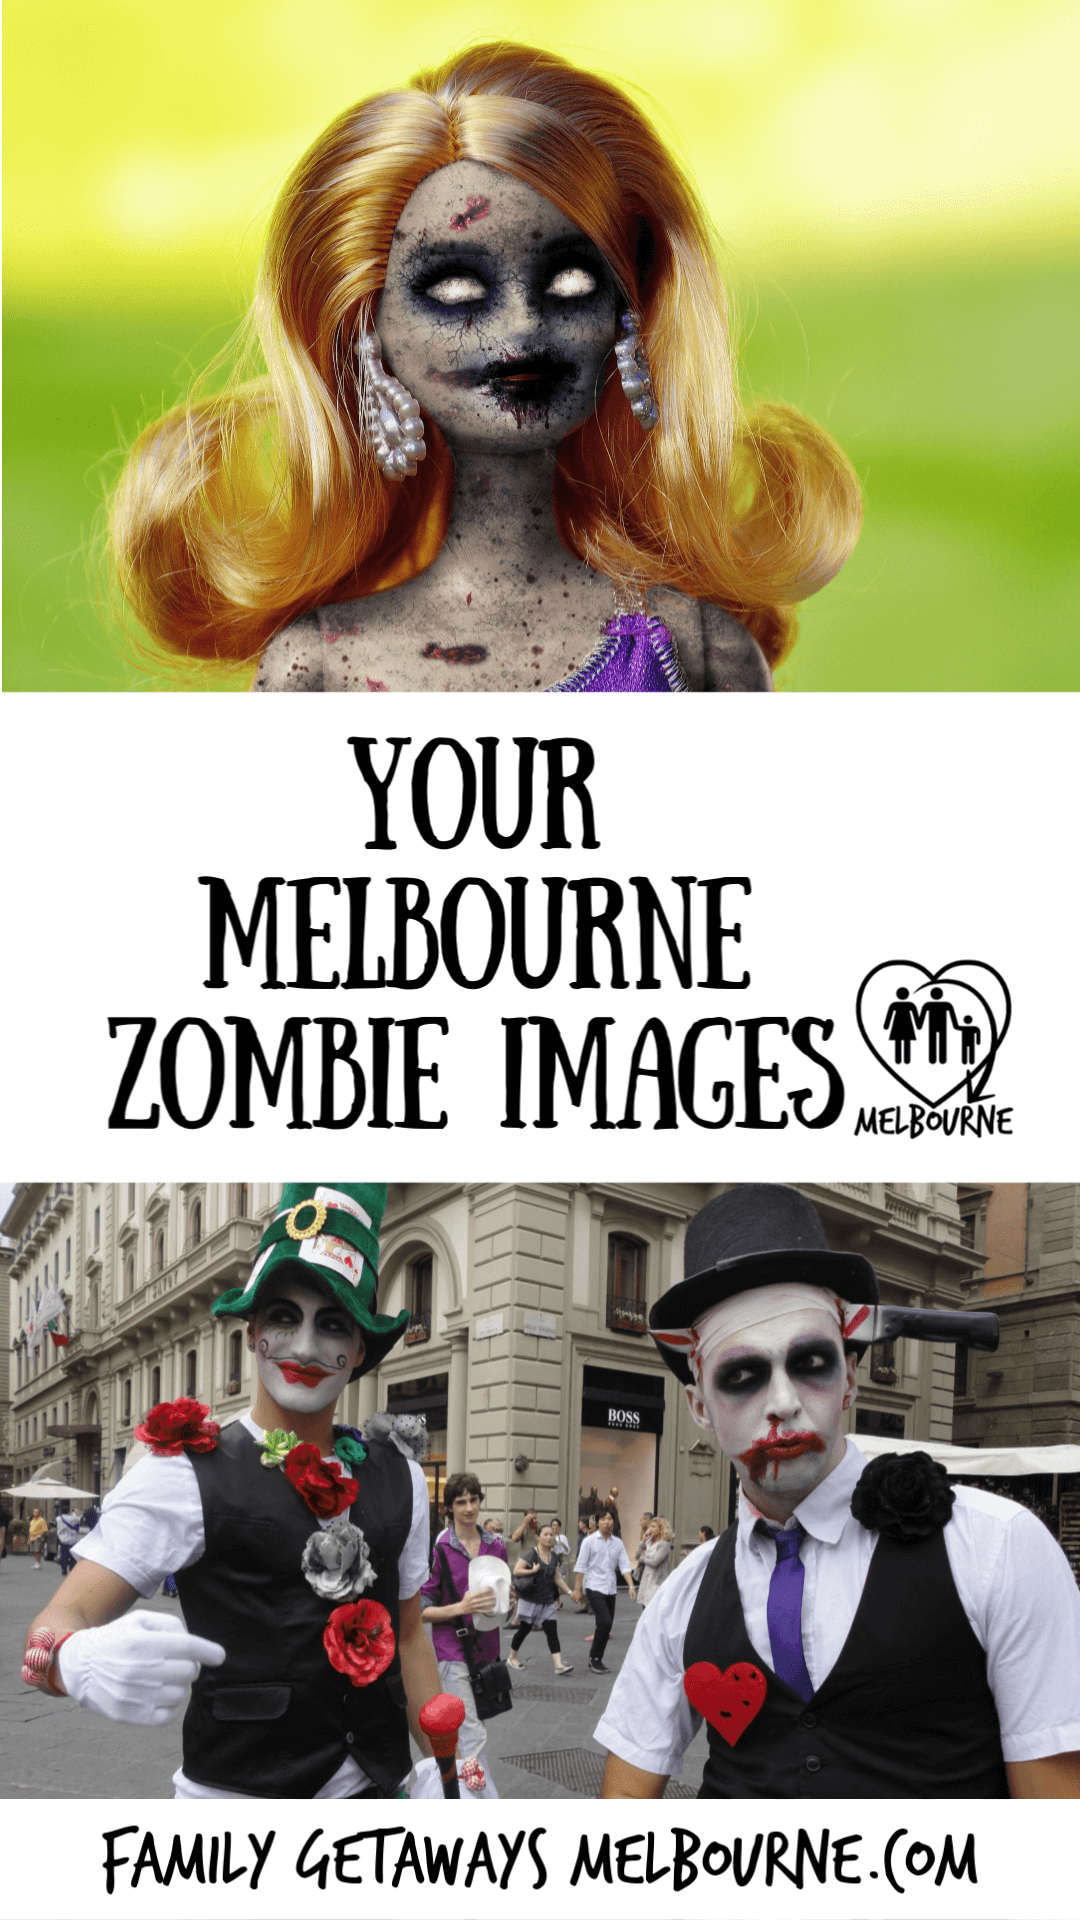 image to pin to Pinterest for the site page on Zombie images from 2012